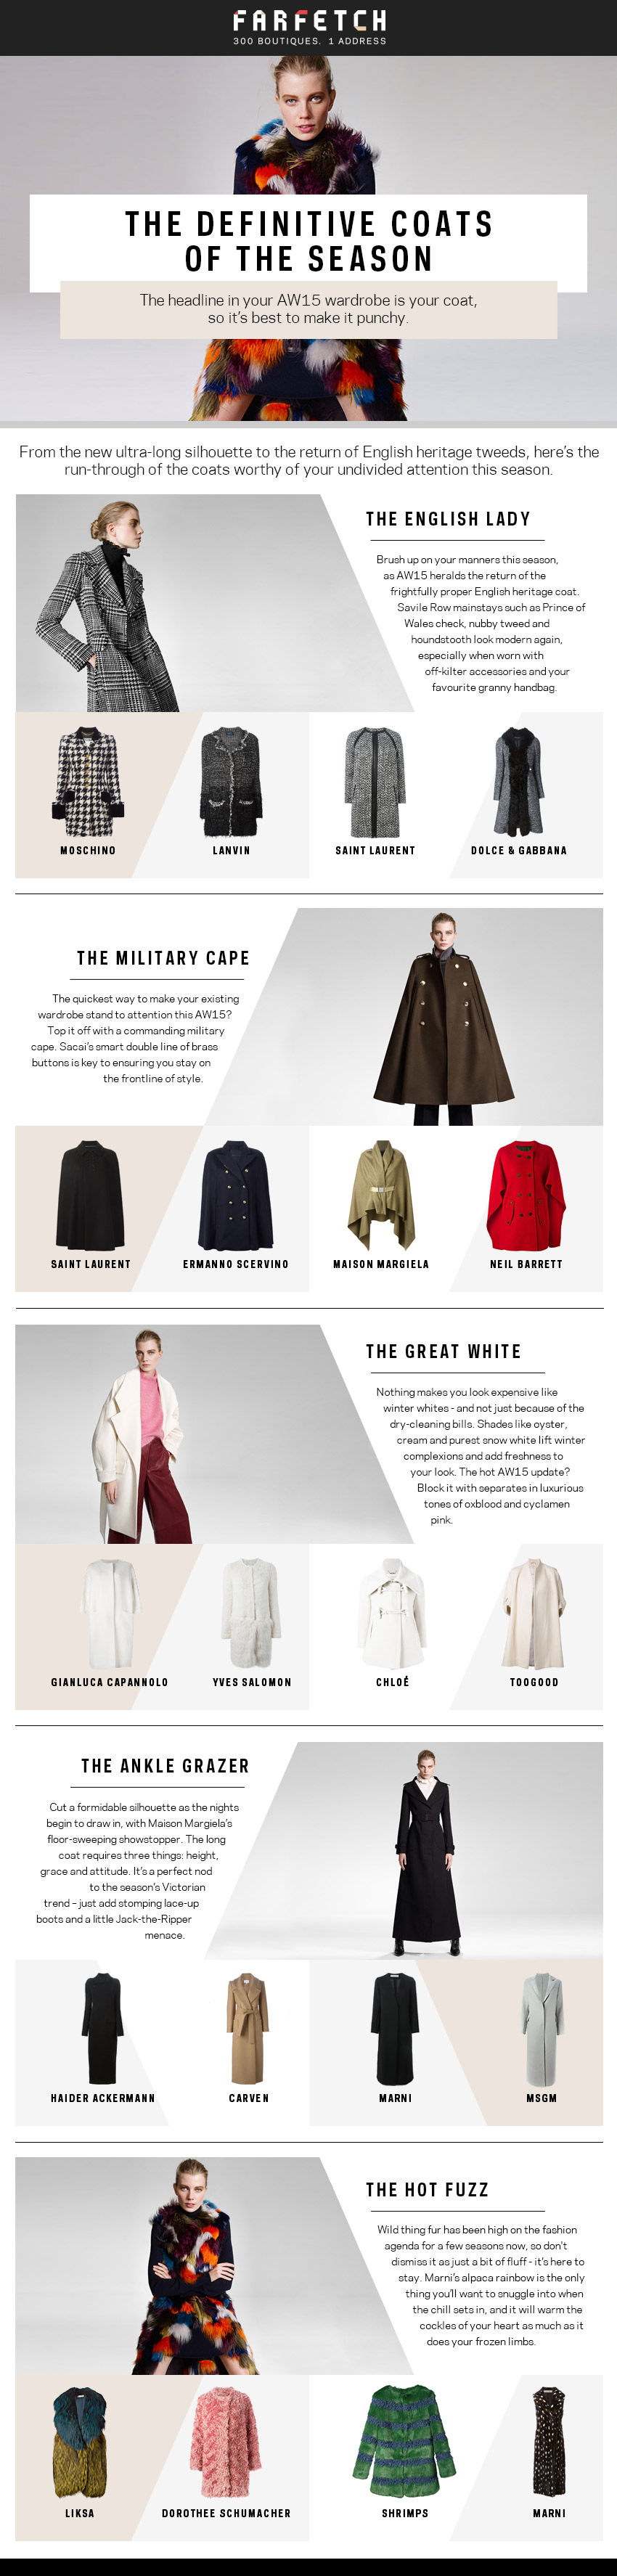 FarFetch AW Trend Report - The 6 Definitive Coats of the Season (1) copy